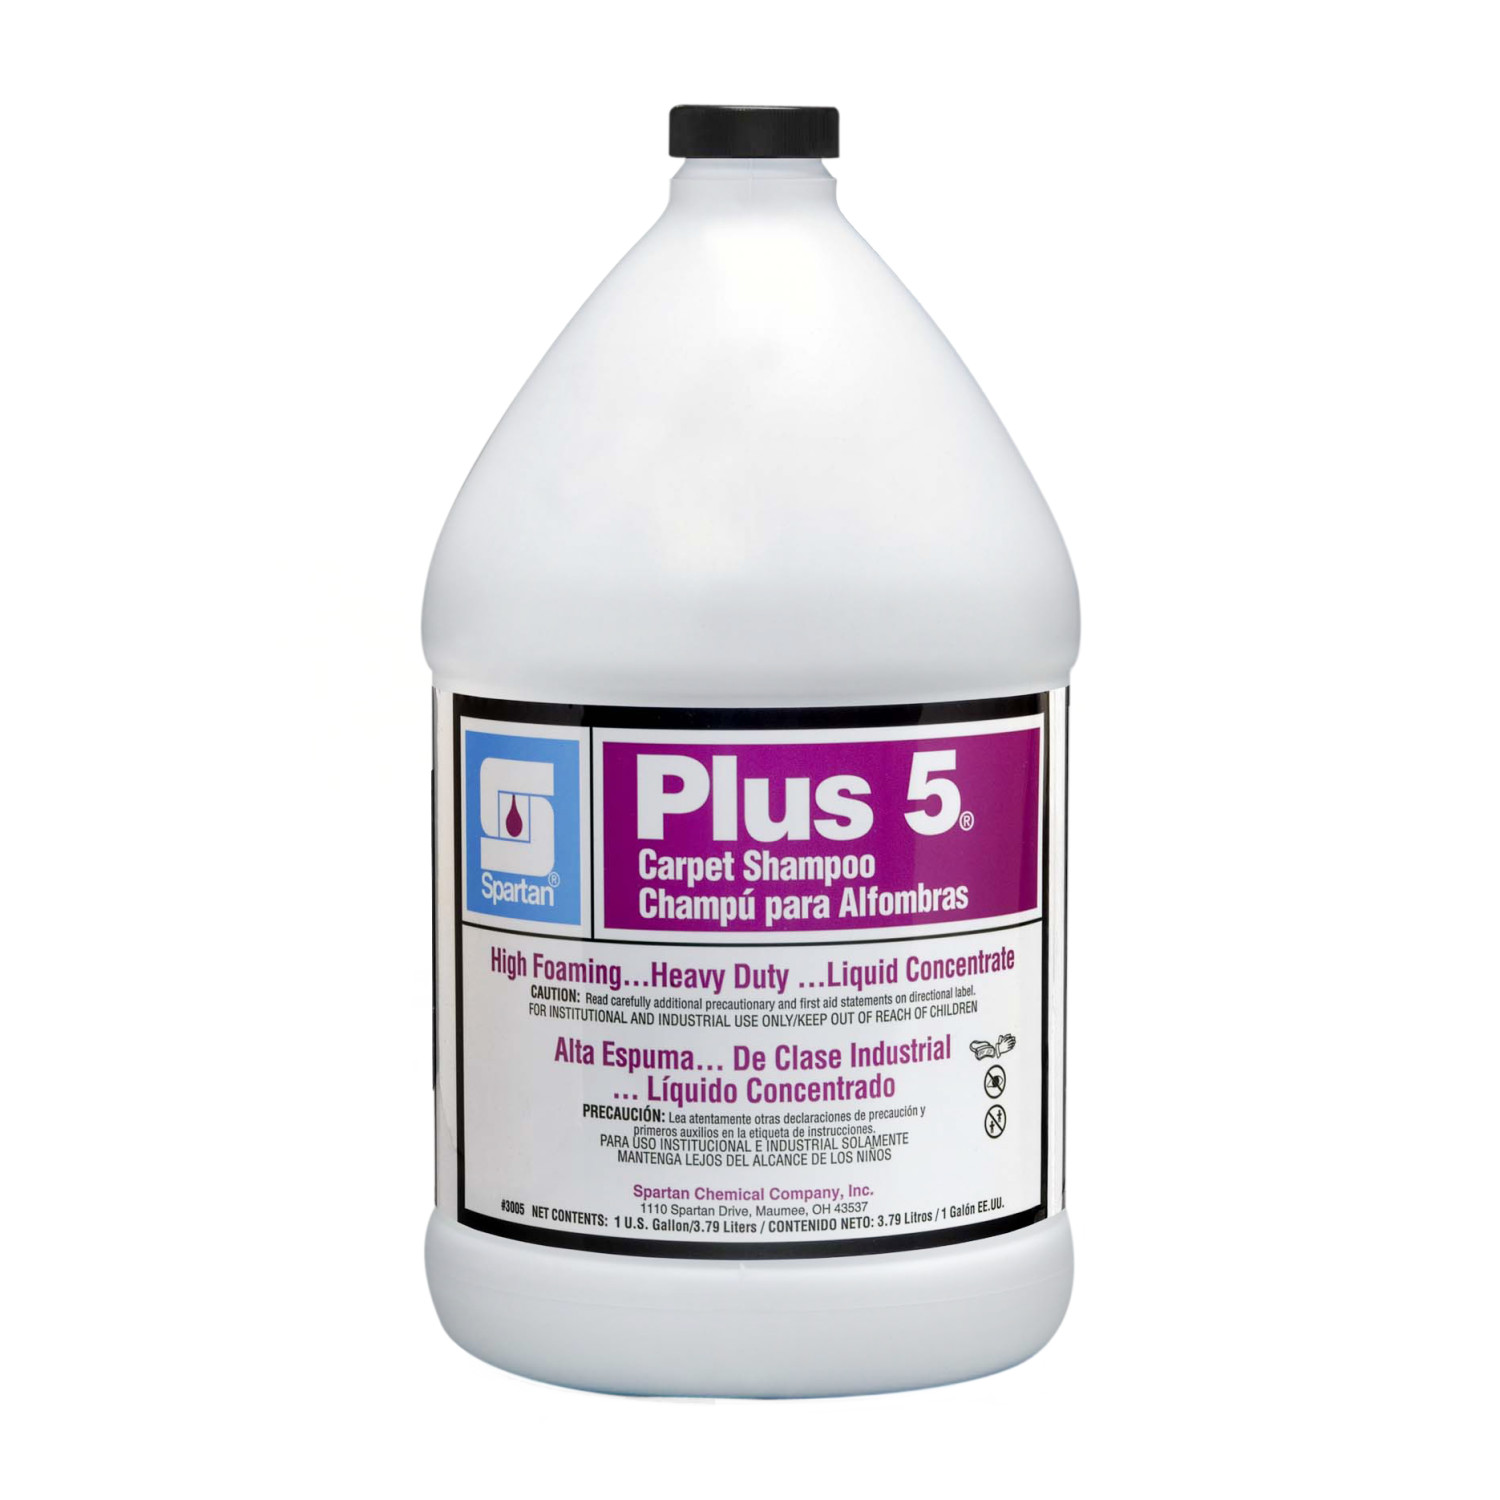 PLUS 5 CARPET SHAMPOO (4)